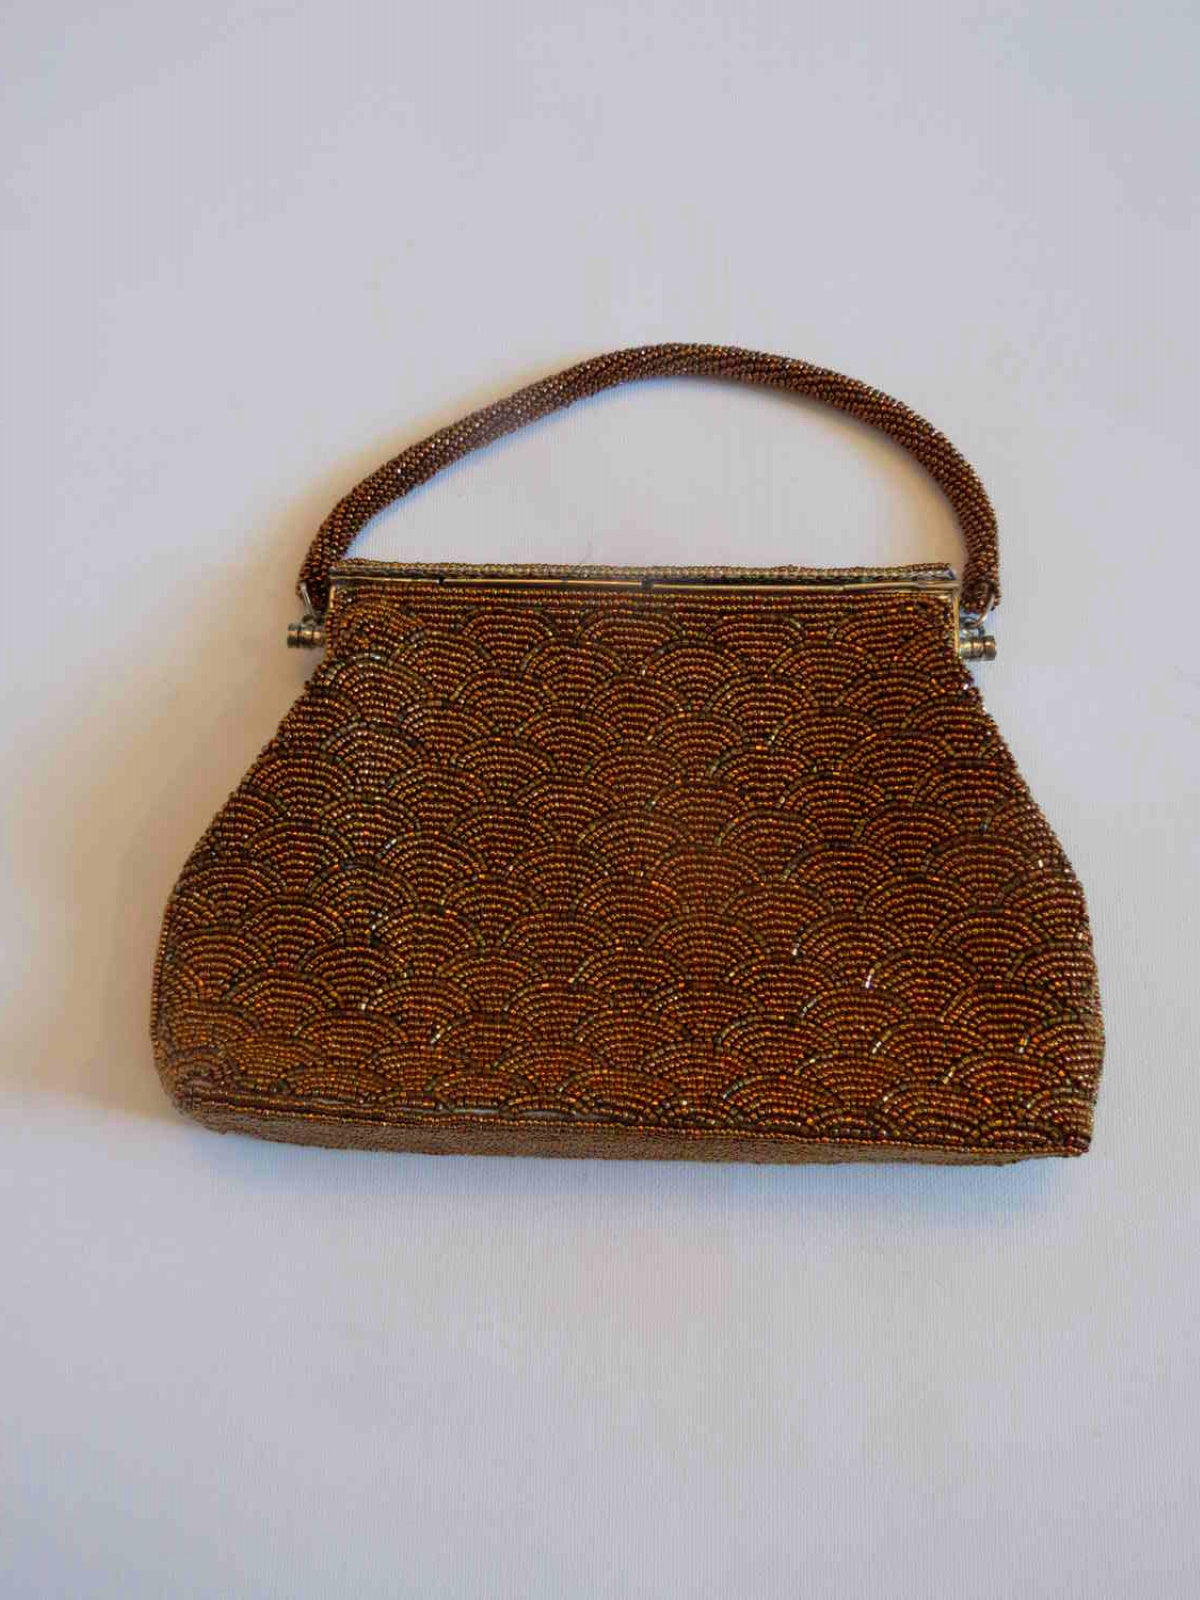 Art Deco Style Copper Beaded Evening Bag - 1960s